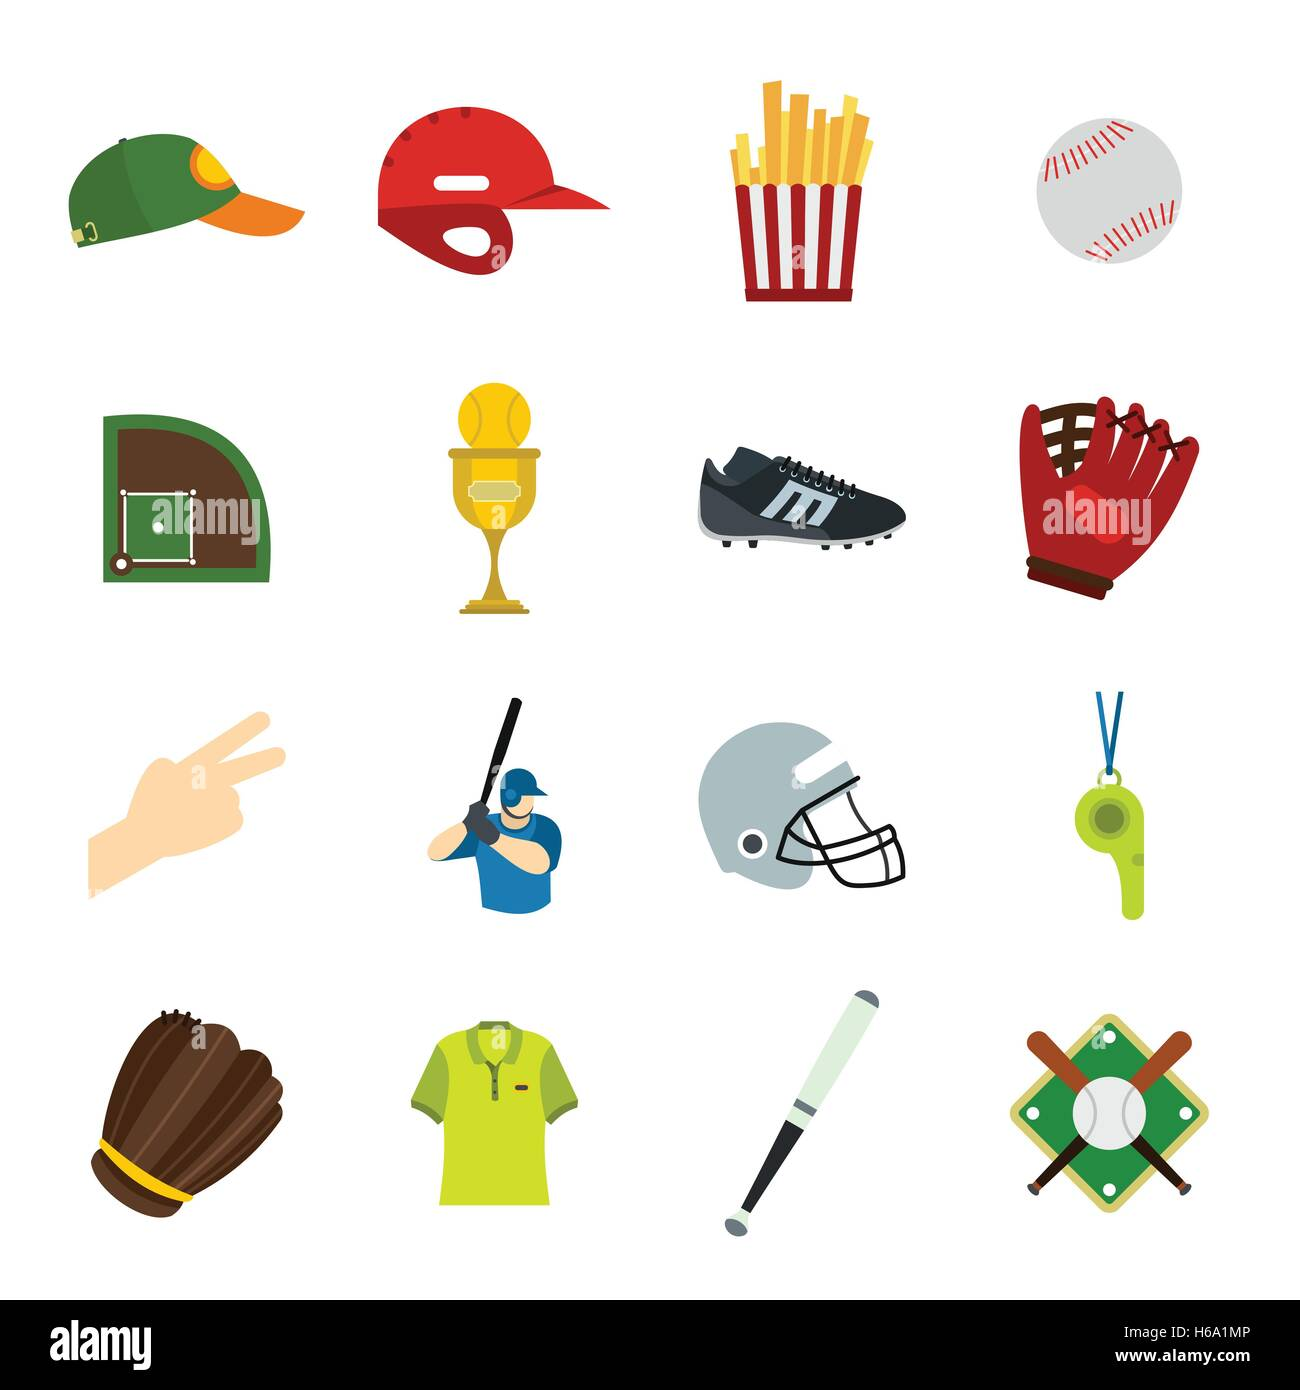 American football flat icons - Stock Image